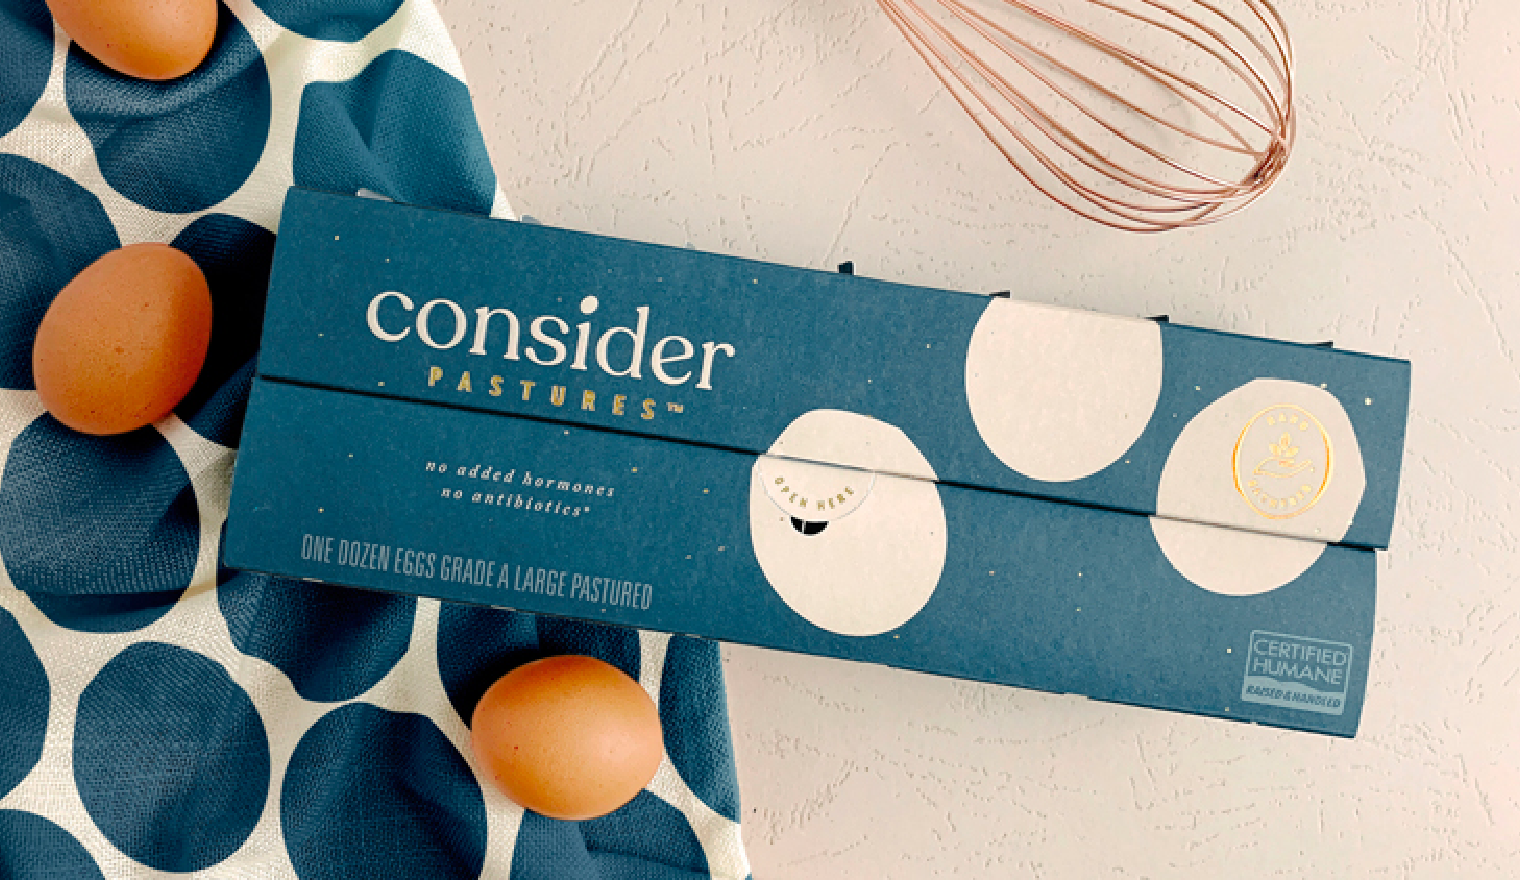 Pearlfisher brand solution for Consider Pastures Gold Standard Eggs